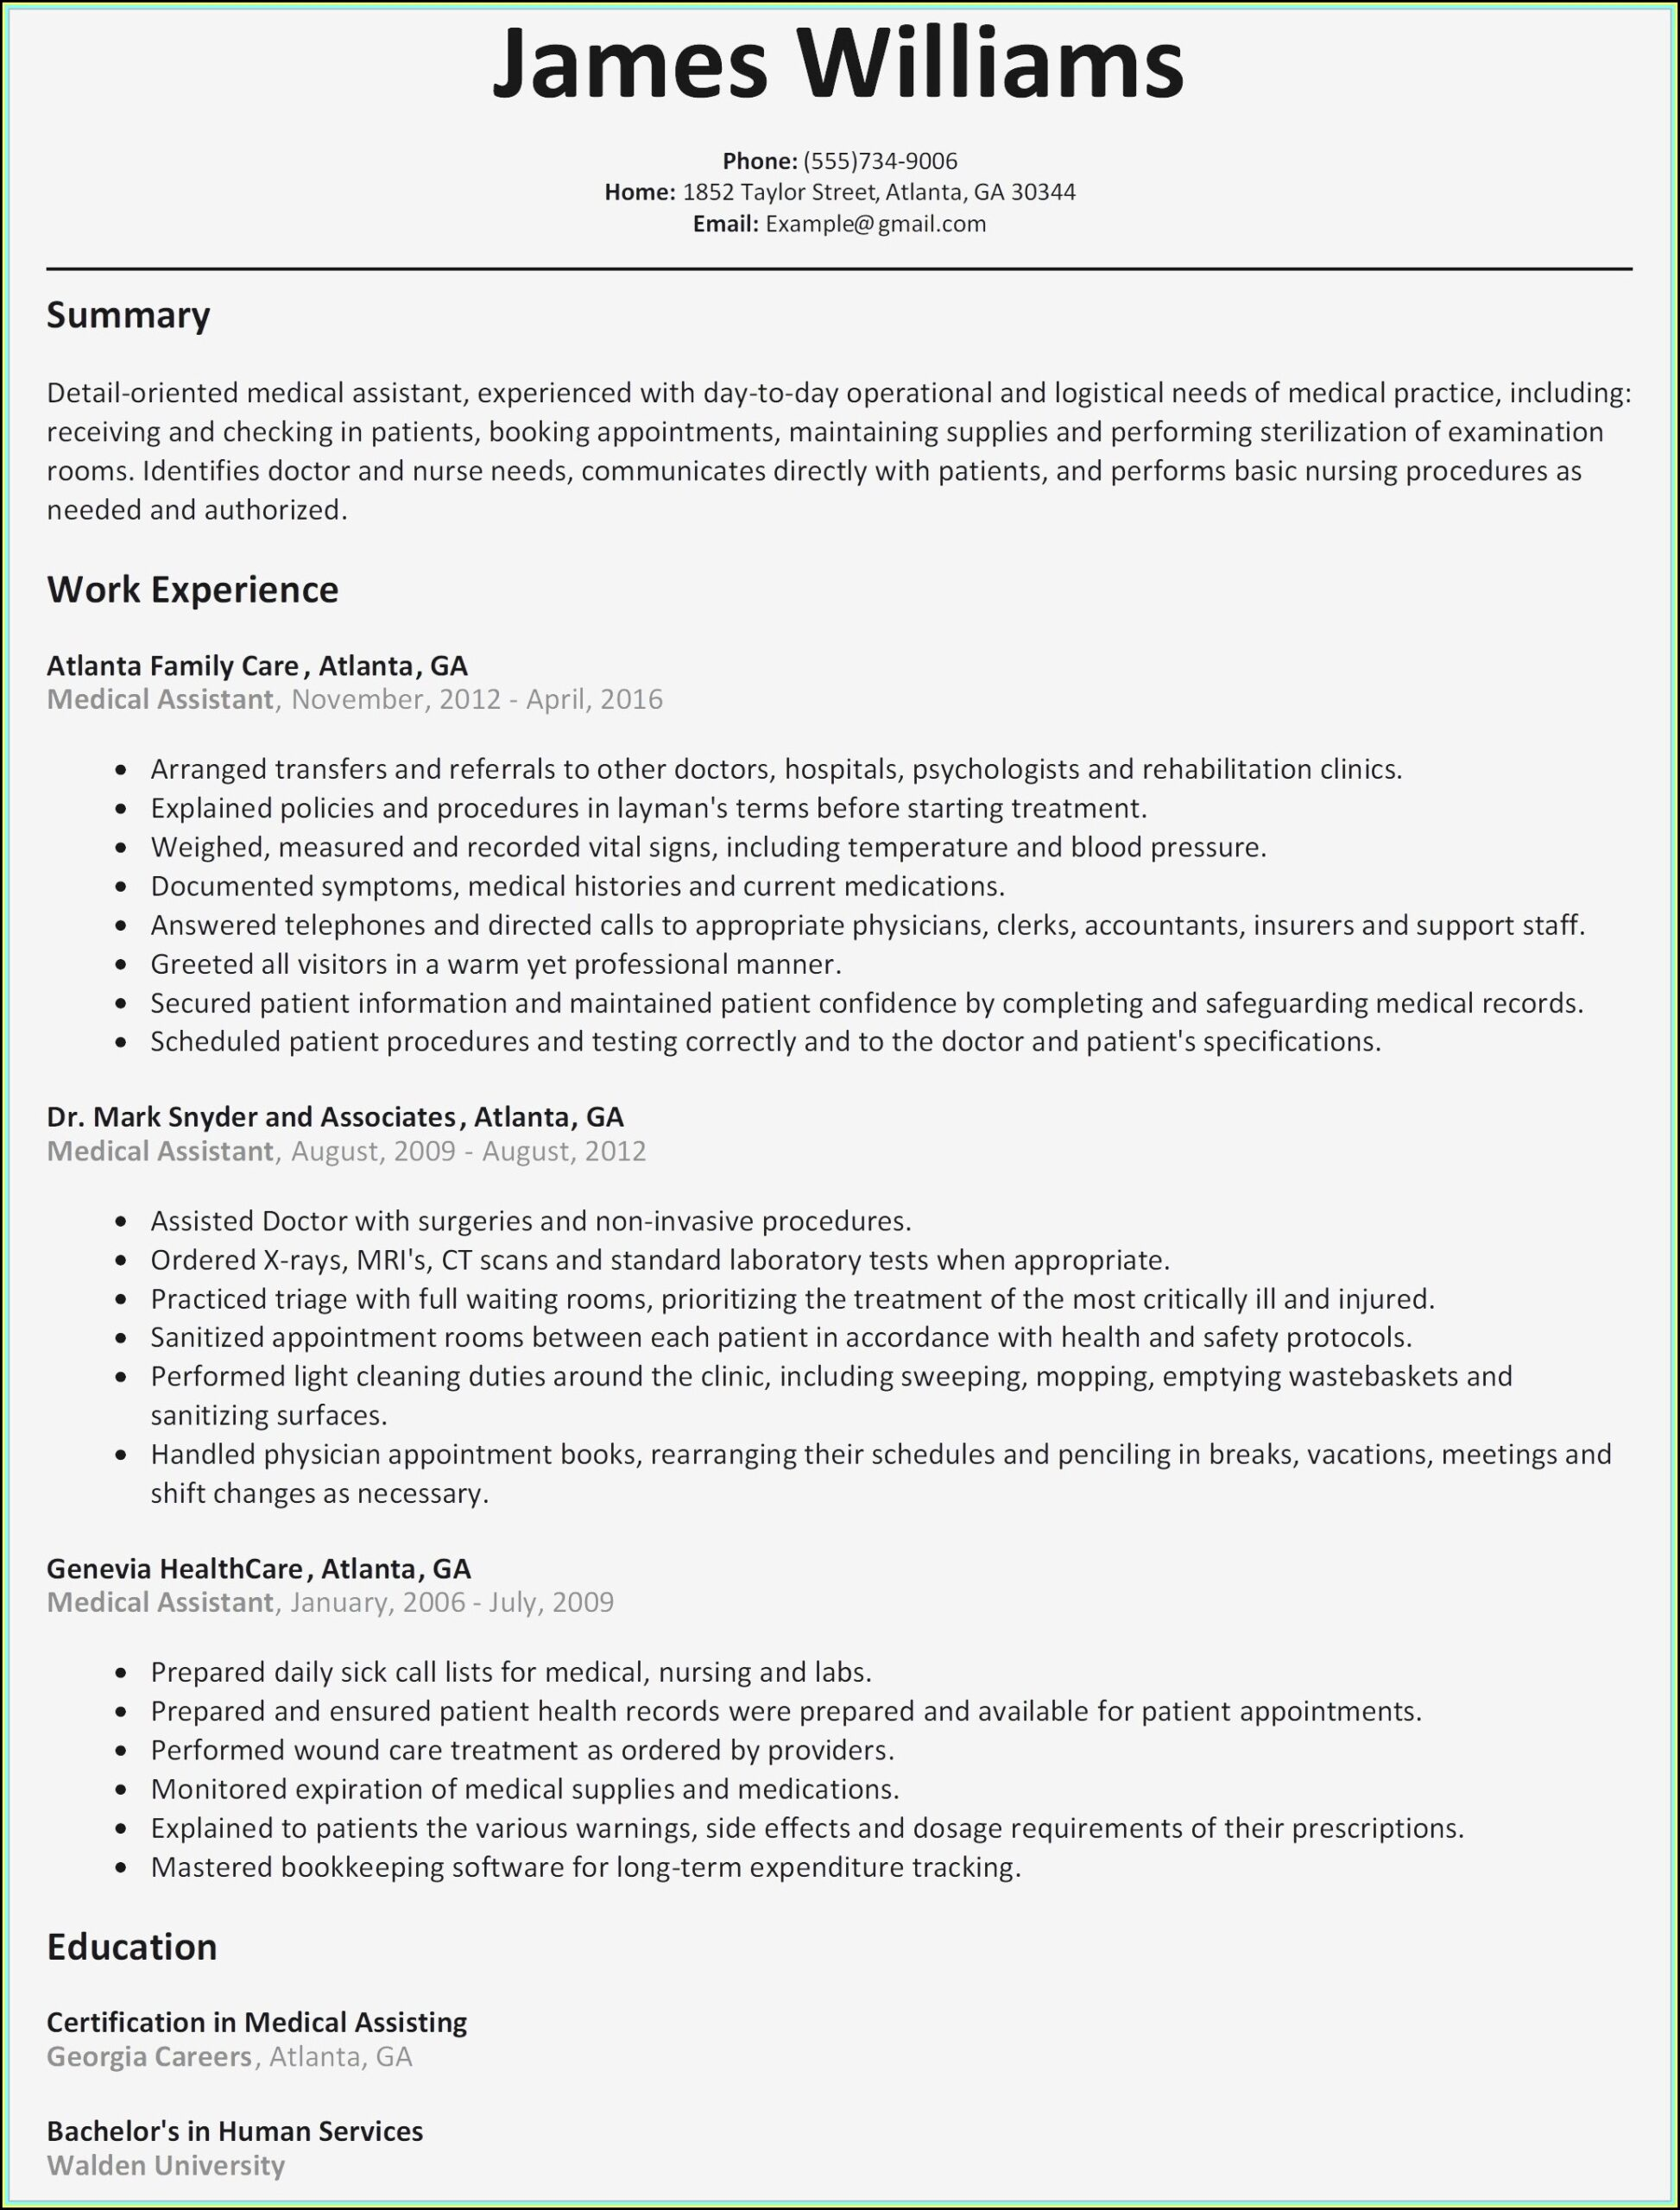 best resume writing services chicago us all industries canberra top nyc software intern Resume Resume Writing Canberra